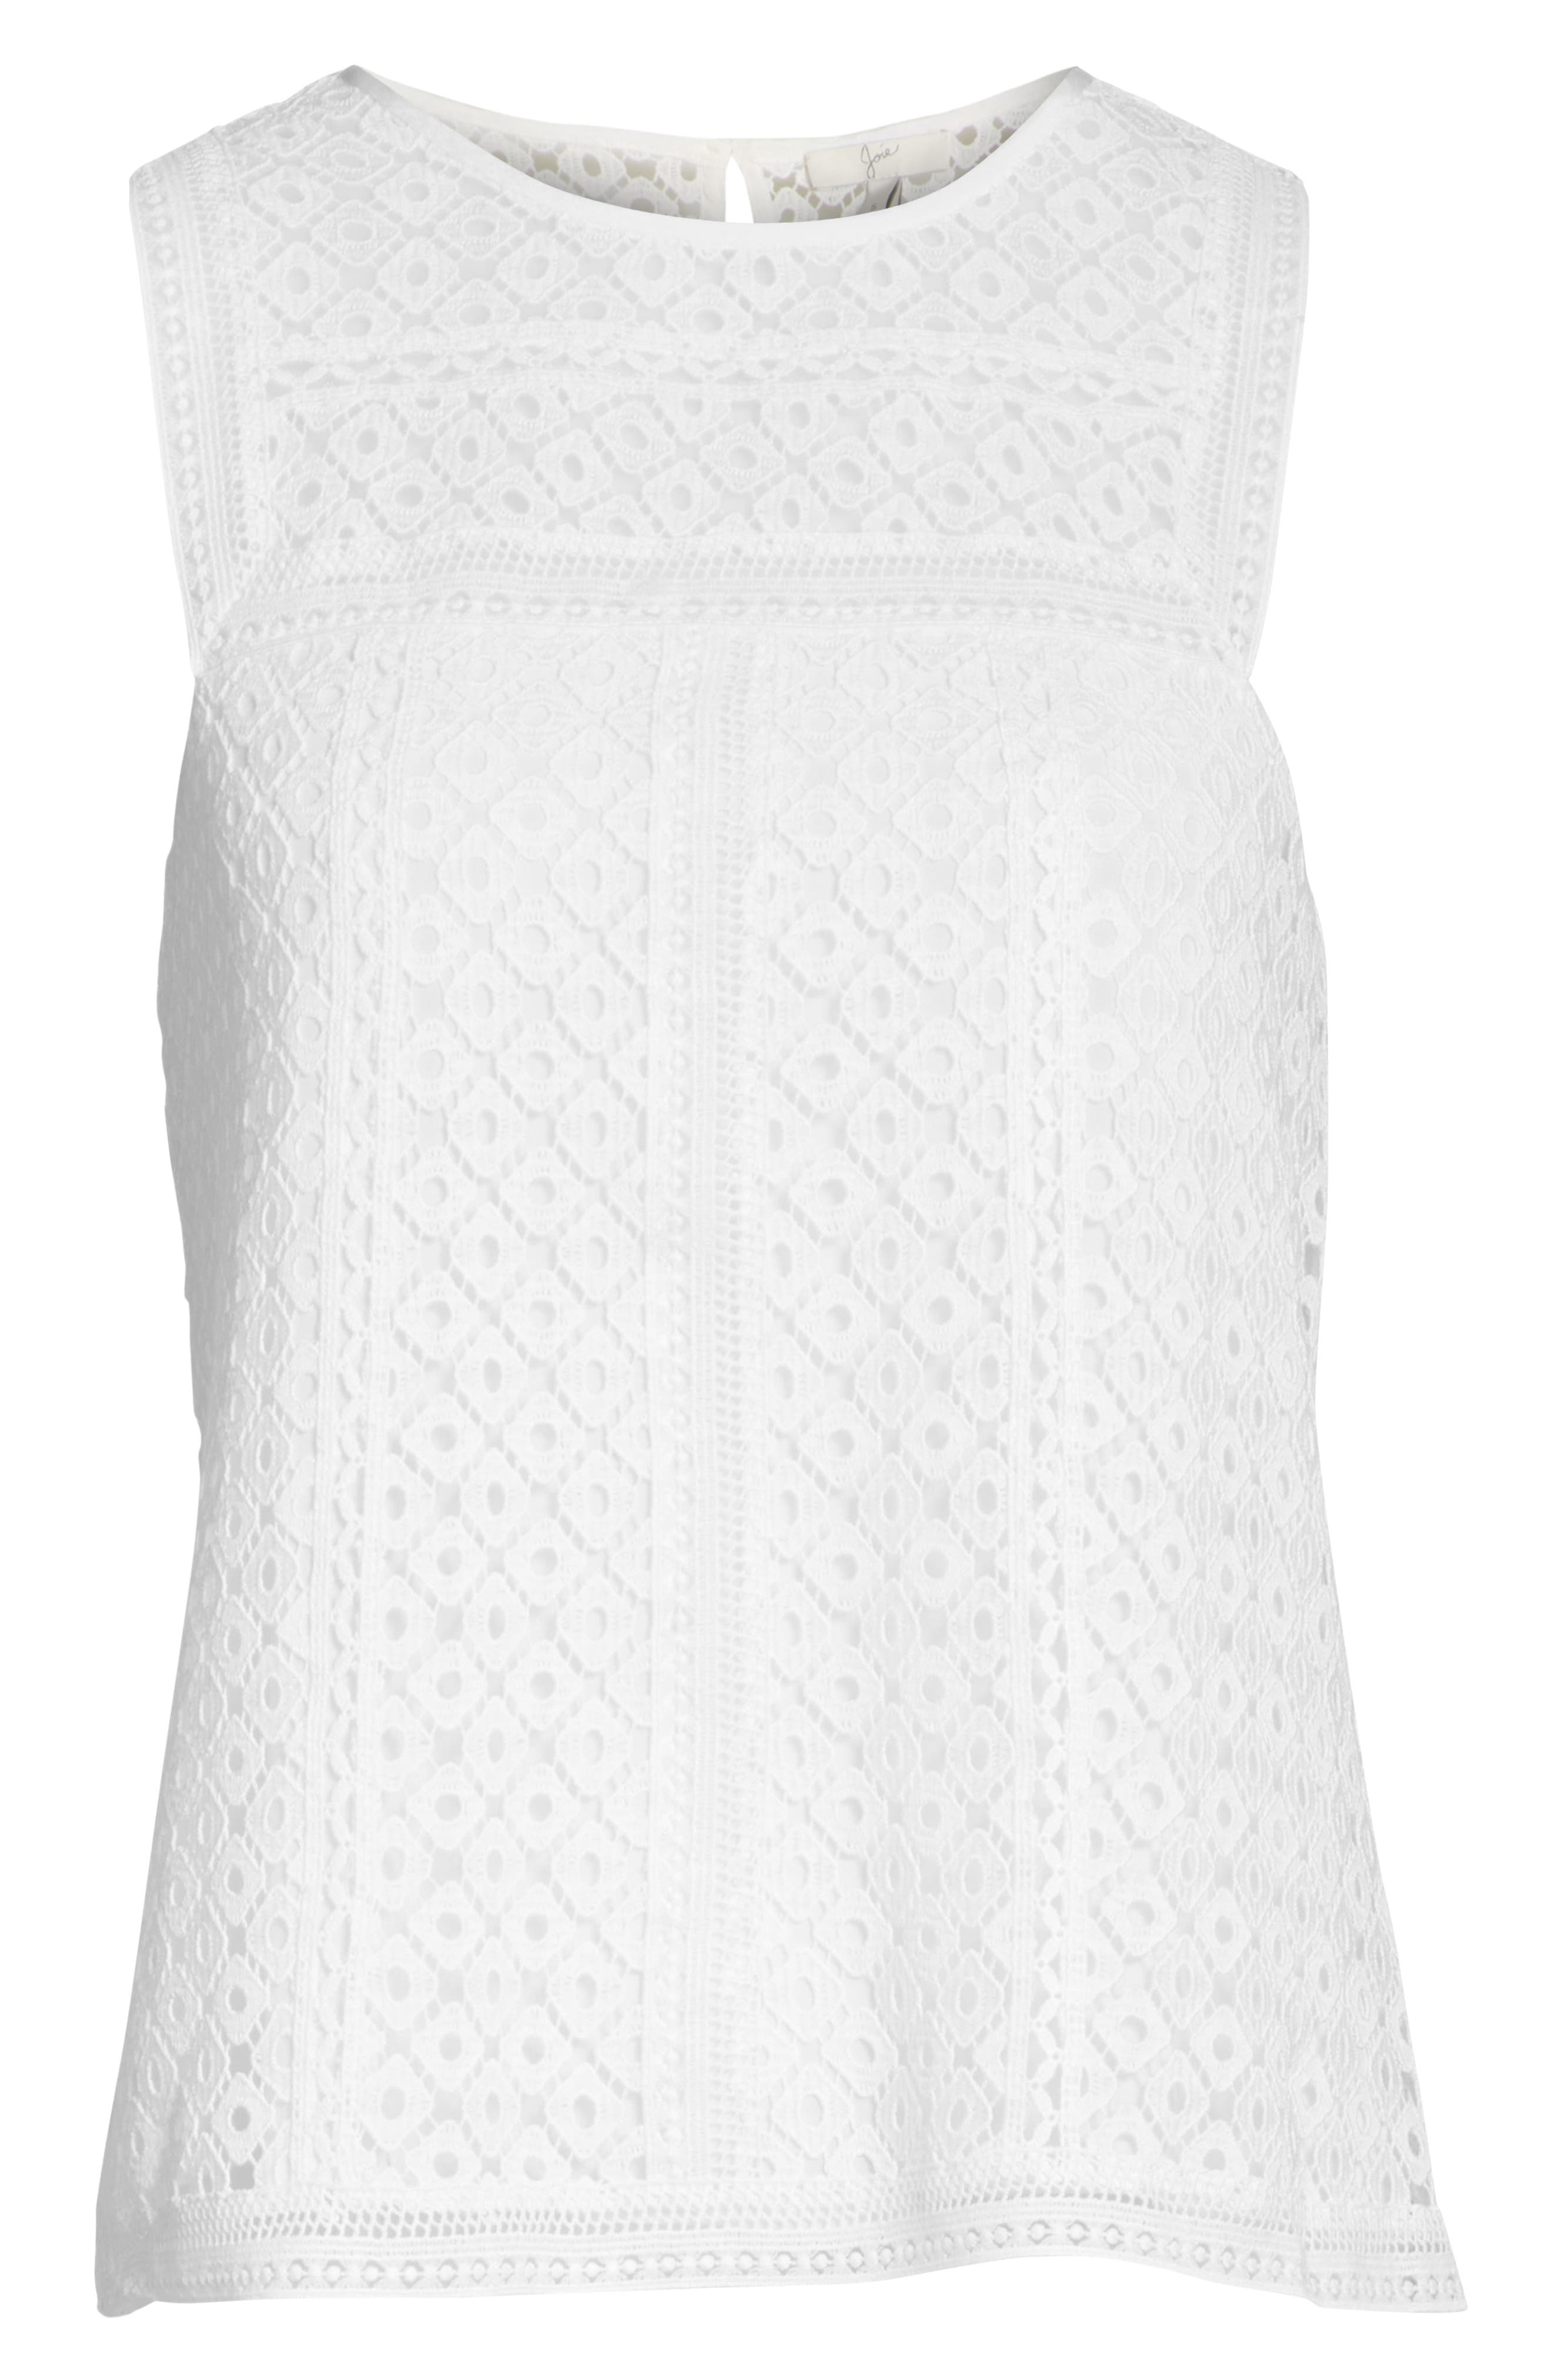 Esrel Lace Top,                             Alternate thumbnail 6, color,                             114